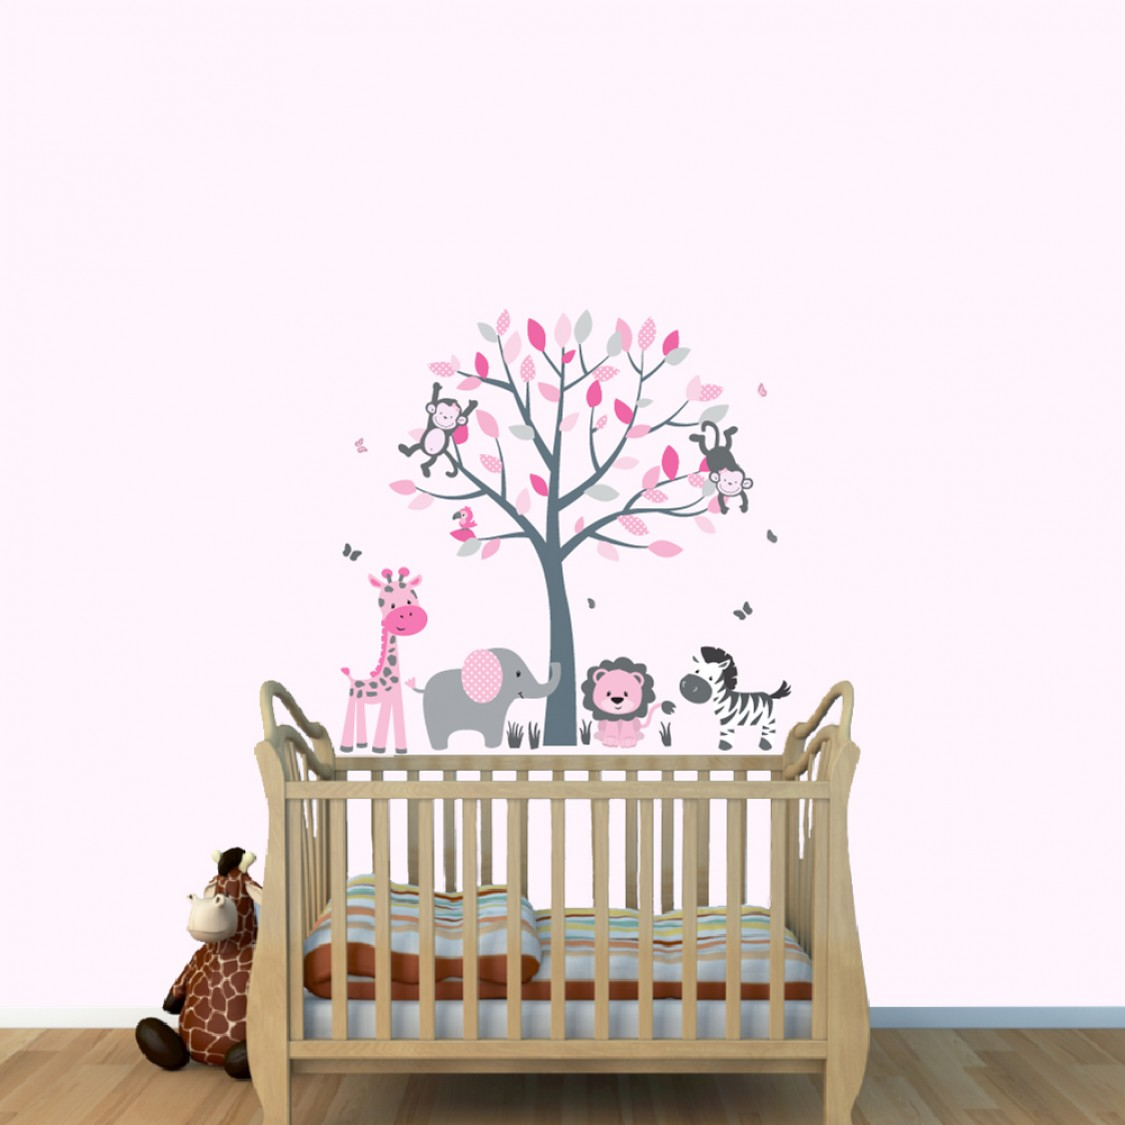 Pink and Gray Jungle Decals With Elephant Wall Decor For Girls Nursery